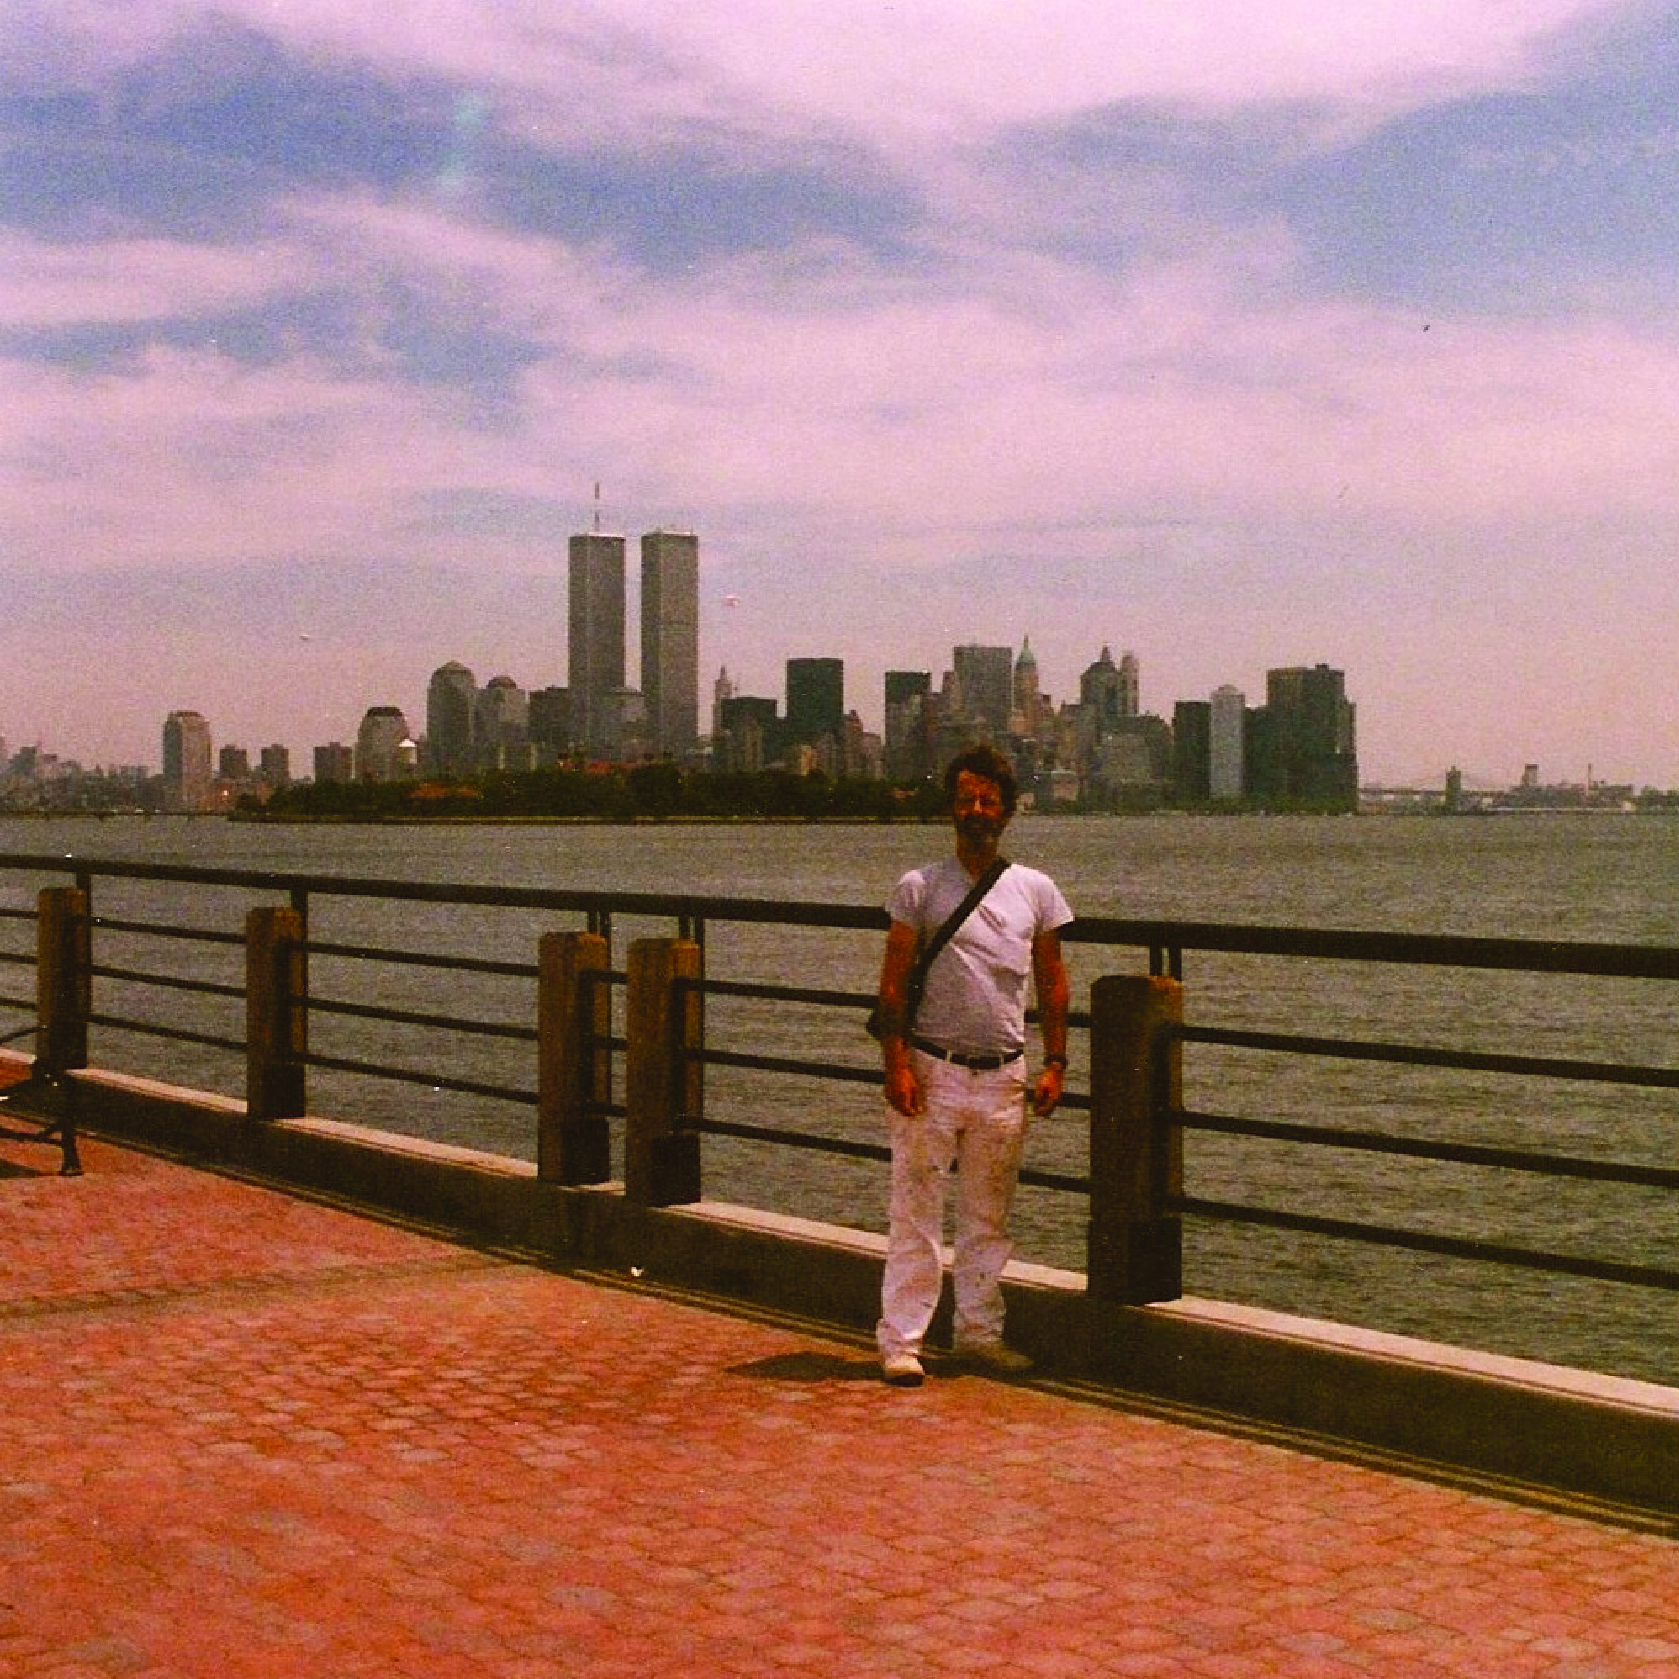 My dad, taking a break from work in jersey city to pose in front of the new york skyline.